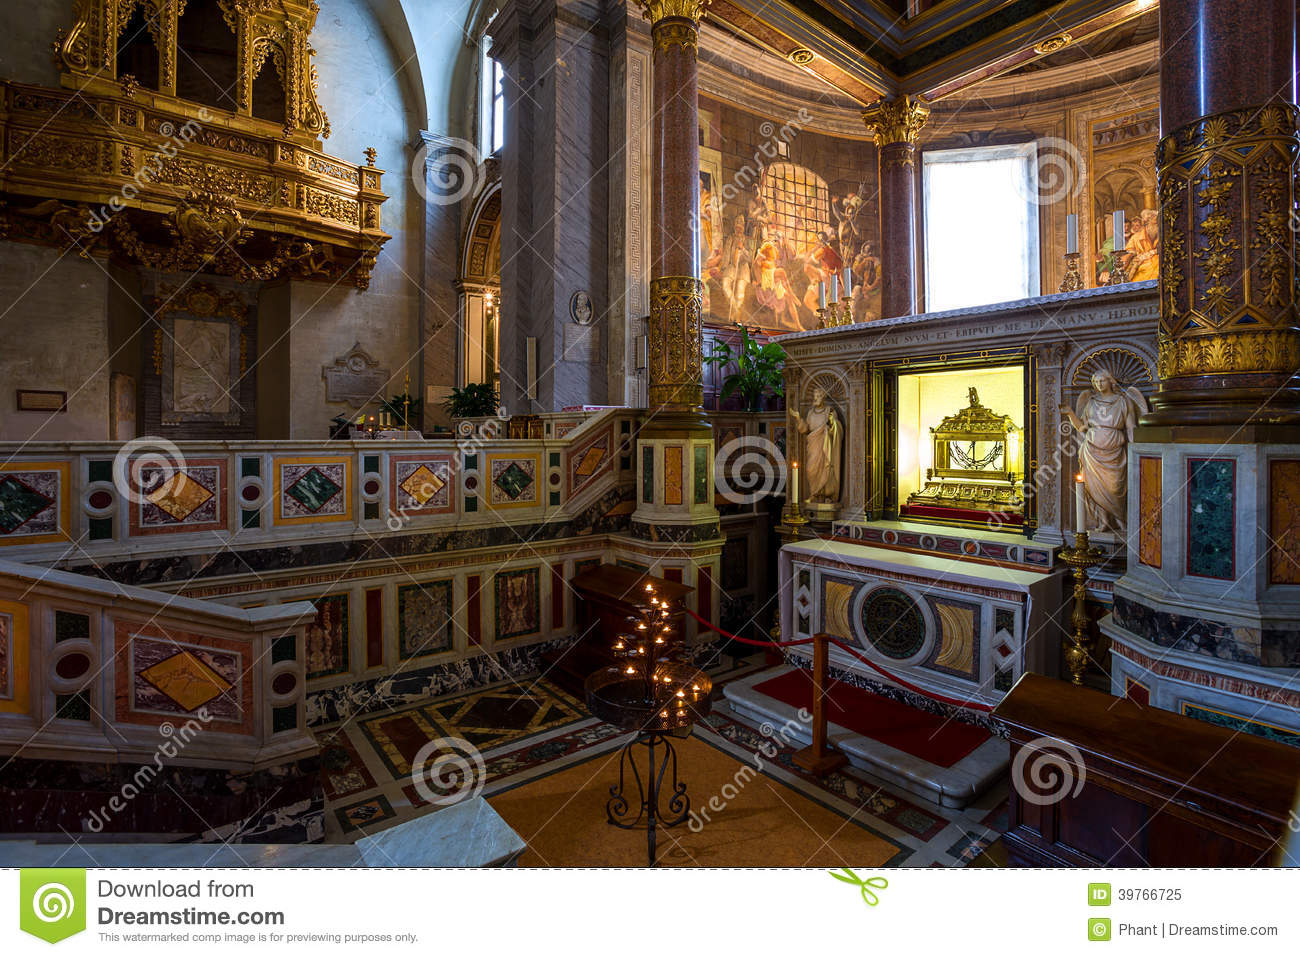 San Pietro in Vincoli church. Rome. Italy.